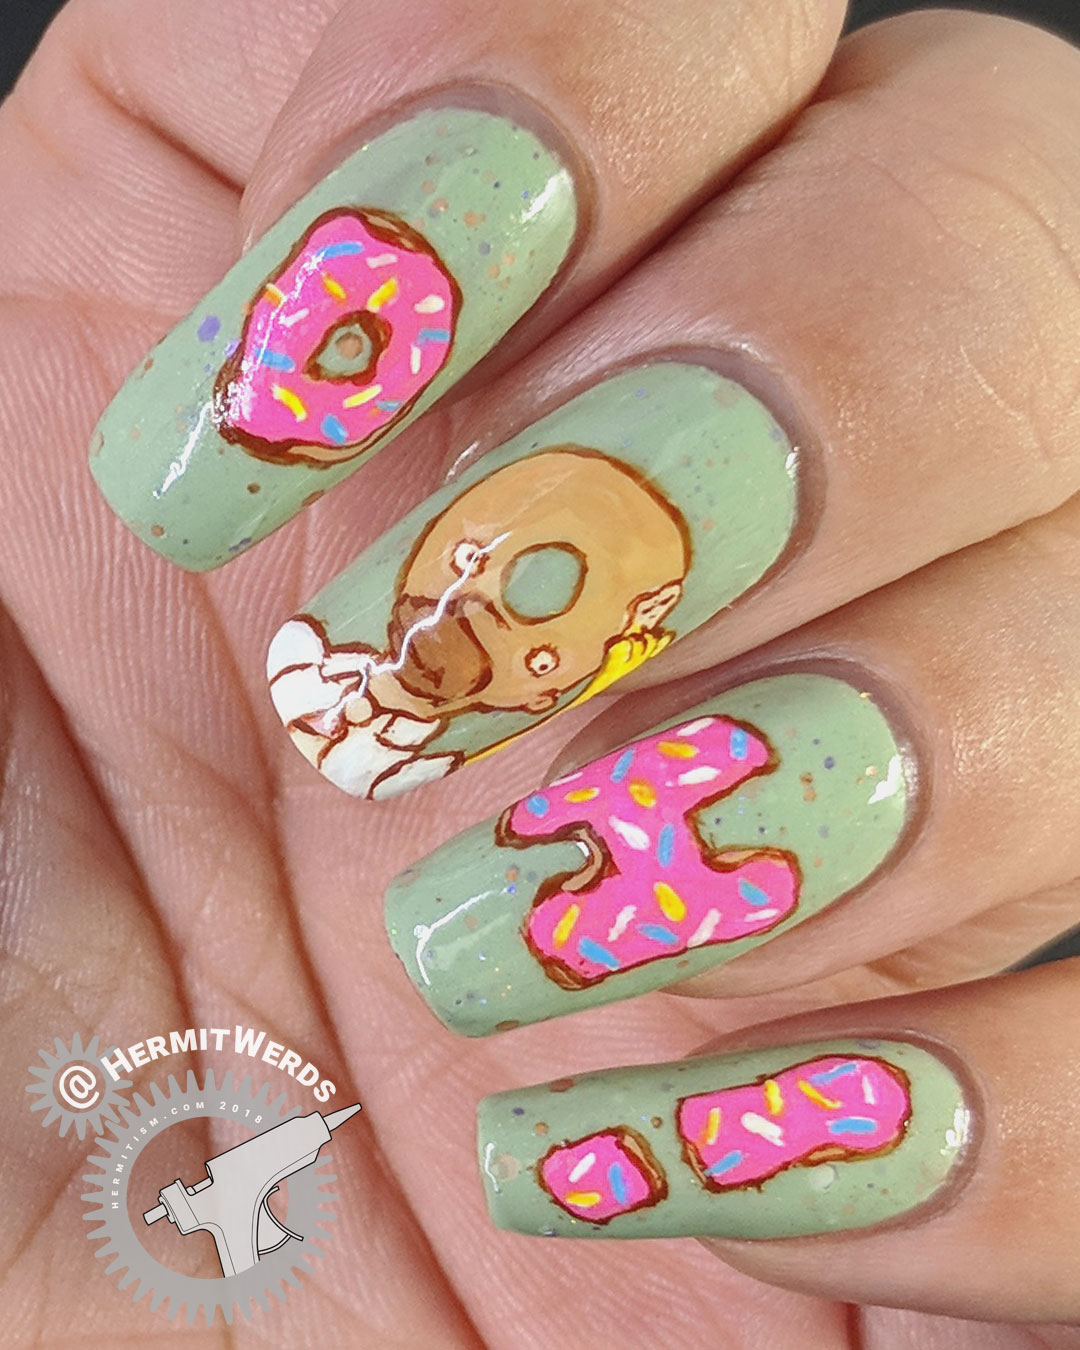 "The Simpsons - Homer the Donut (glossy) - Hermit Werds - freehand nail art of Homer Simpson turned into a donut head with his catchprase ""Doh"""